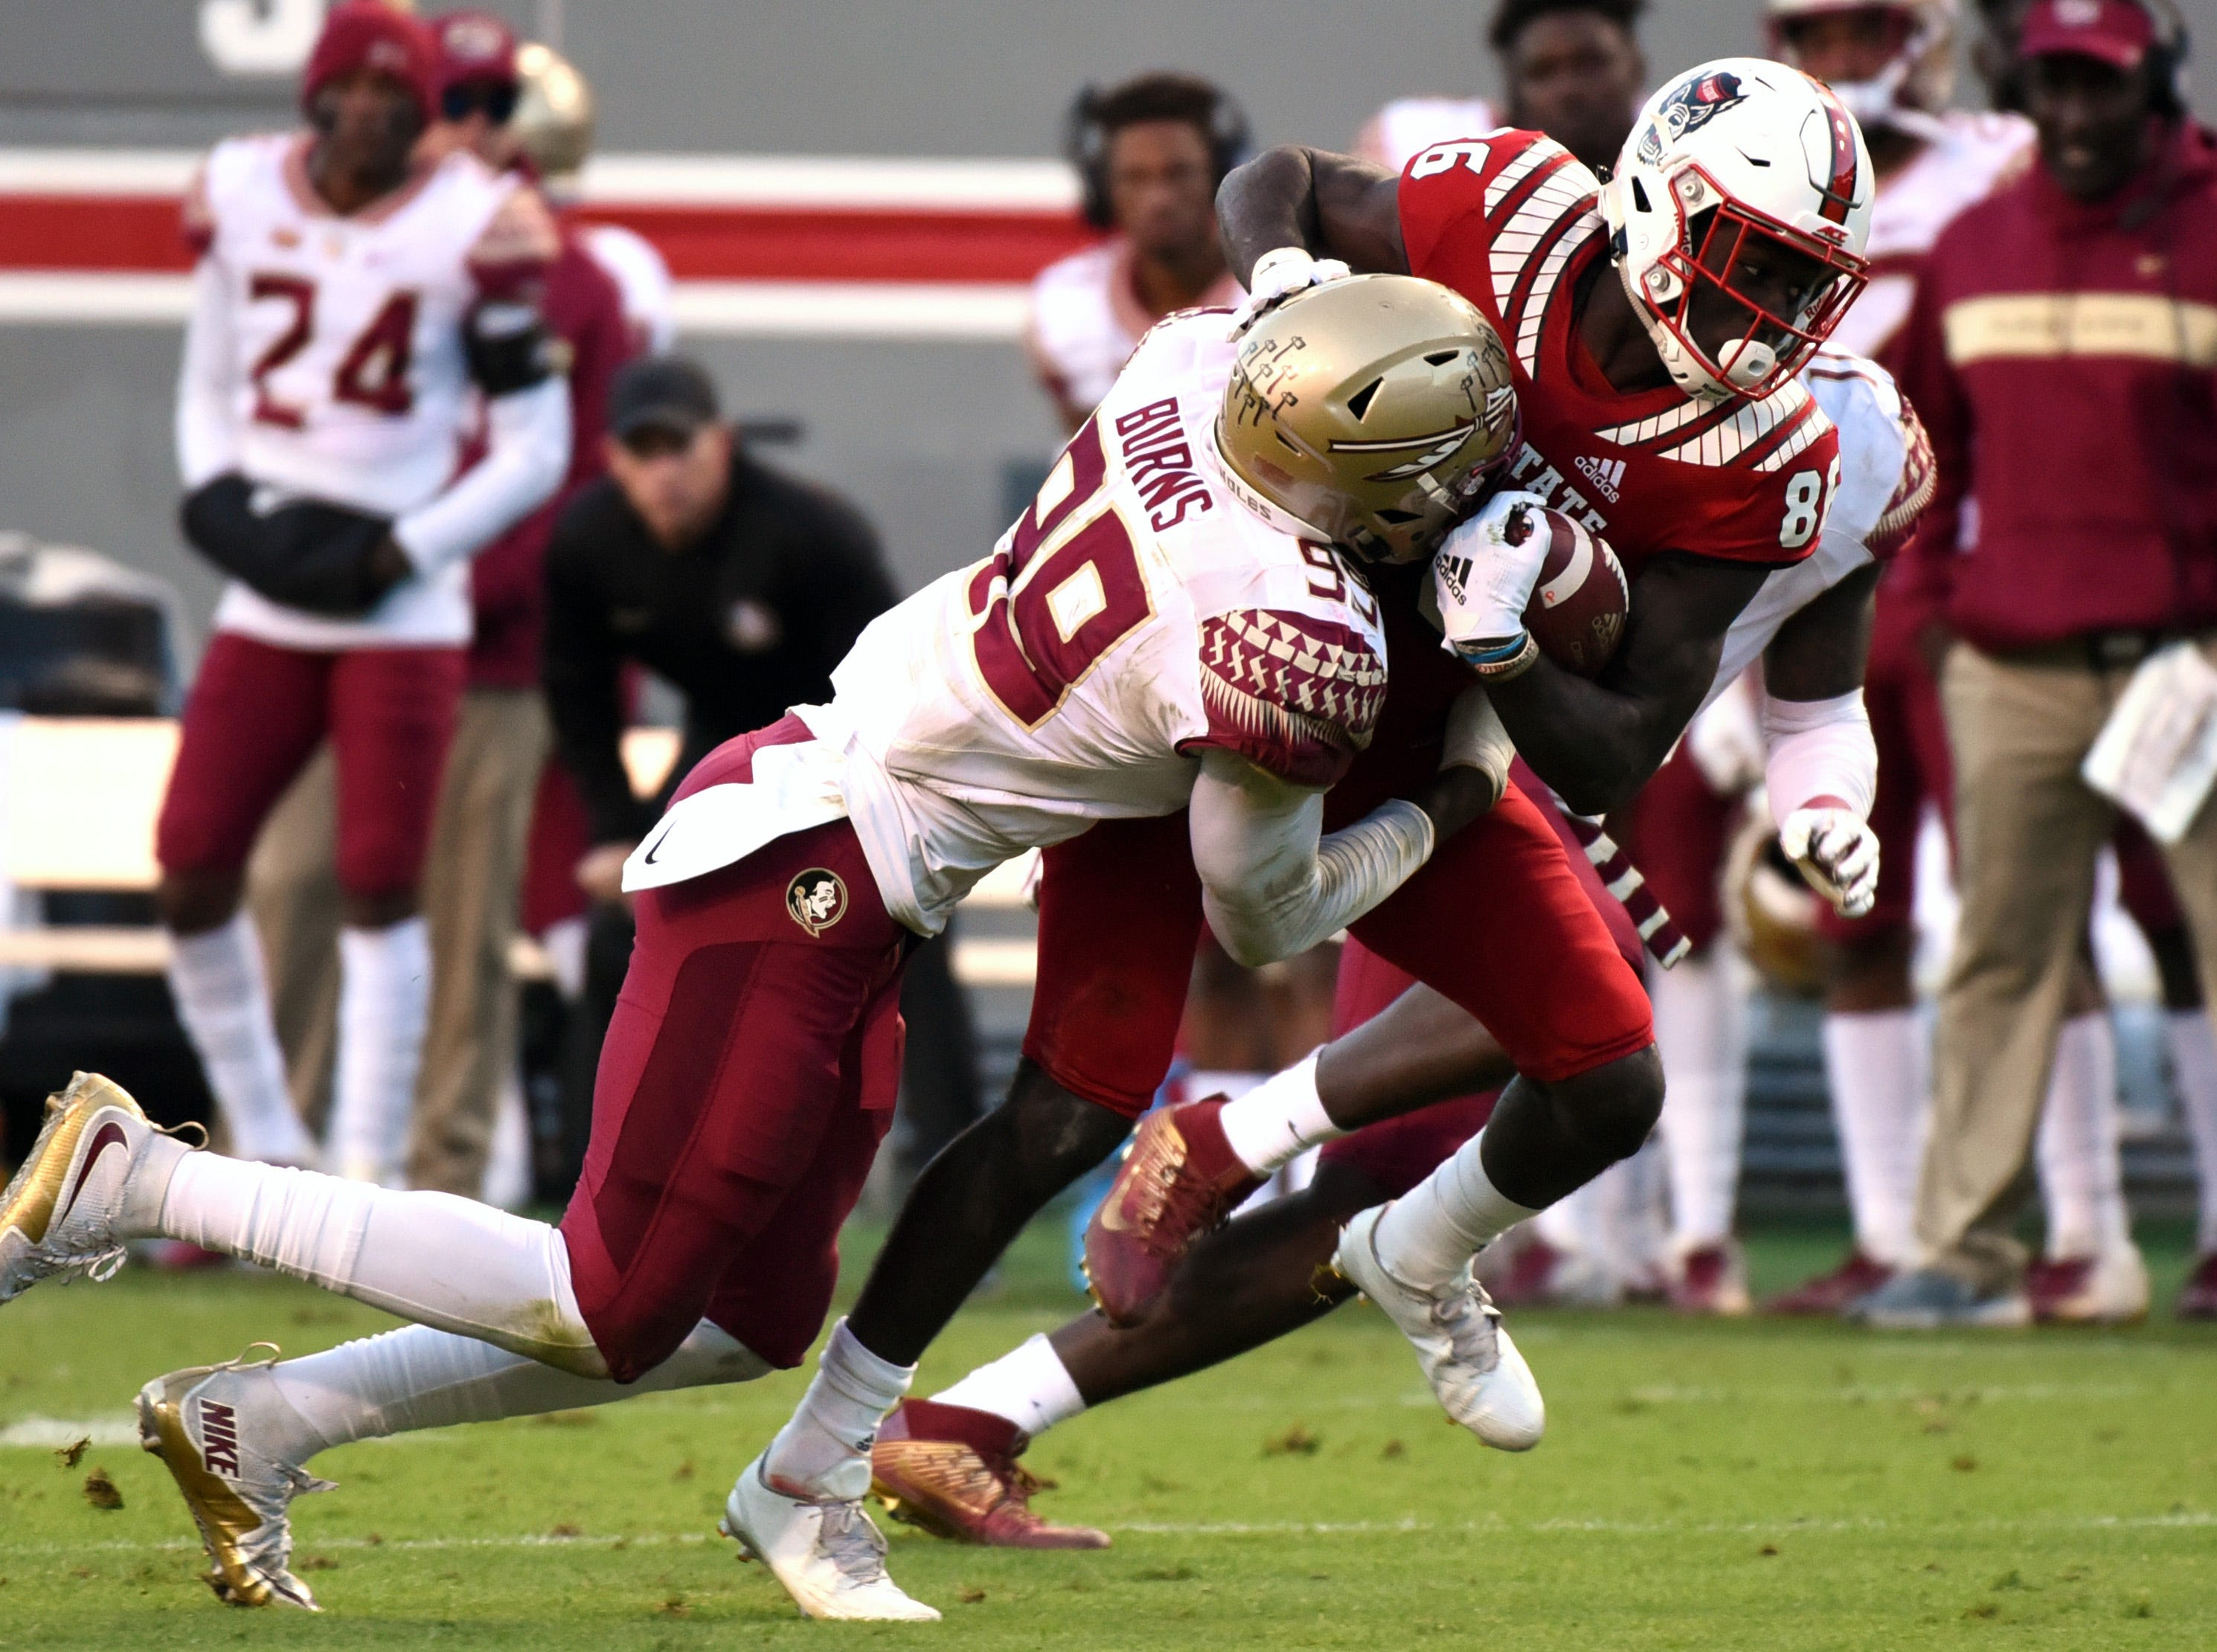 Nov 3, 2018; Raleigh, NC, USA; North Carolina State Wolfpack wide receiver Emeka Emizie (86) is tackled after a catch by Florida State Seminoles defensive end Brian Burns (99) during the second half at Carter-Finley Stadium.  The Wolfpack won 47-28.  Mandatory Credit: Rob Kinnan-USA TODAY Sports